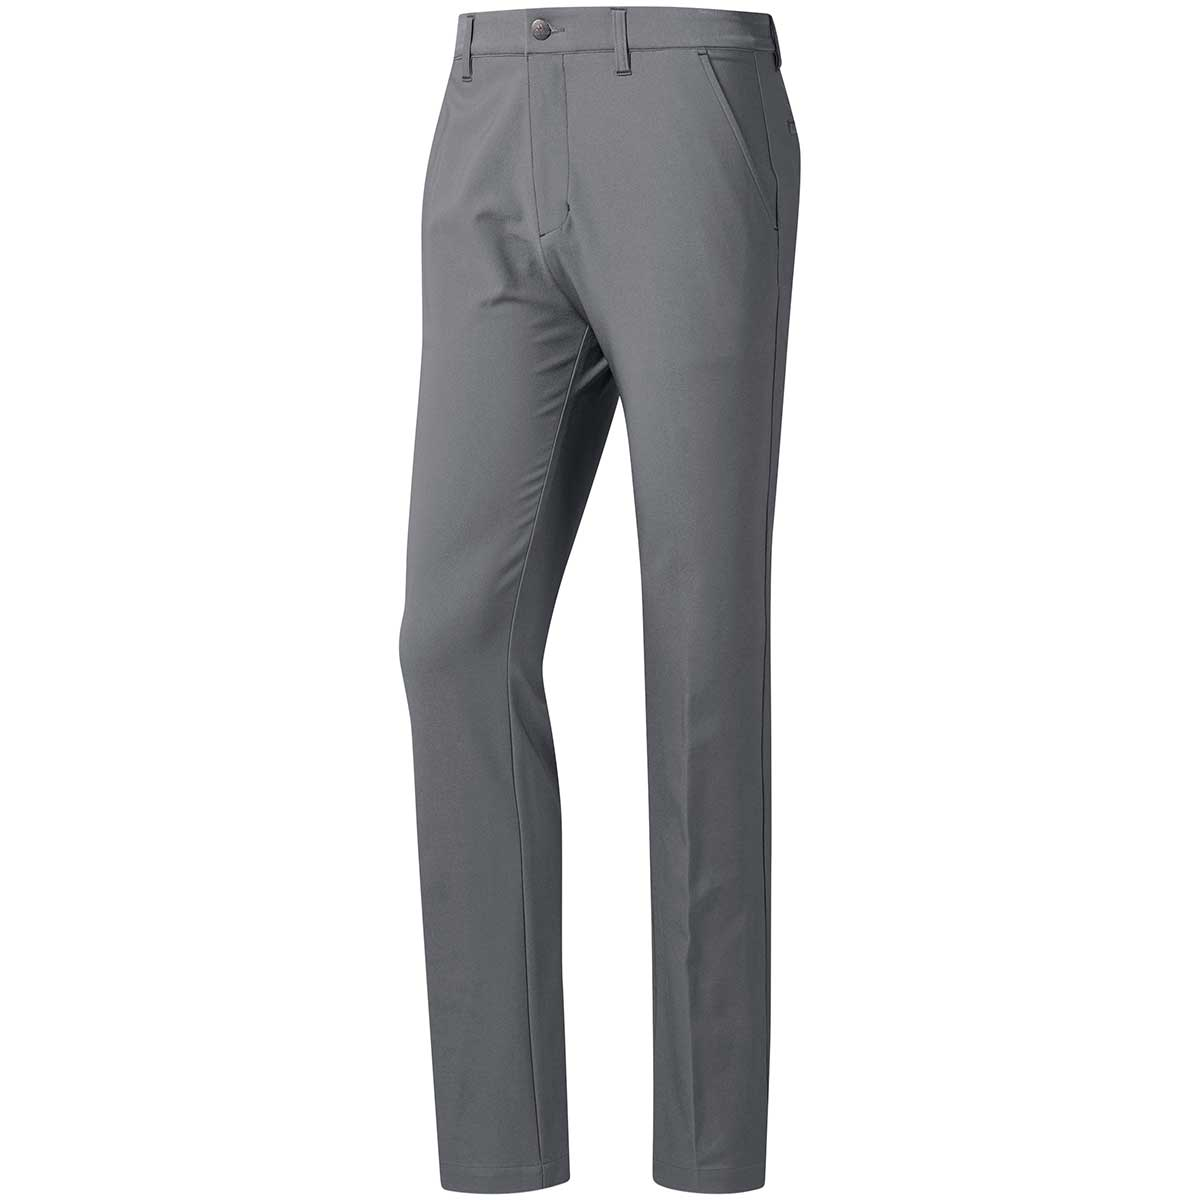 Adidas Ultimate365 3-Stripes Pants - Grey Three